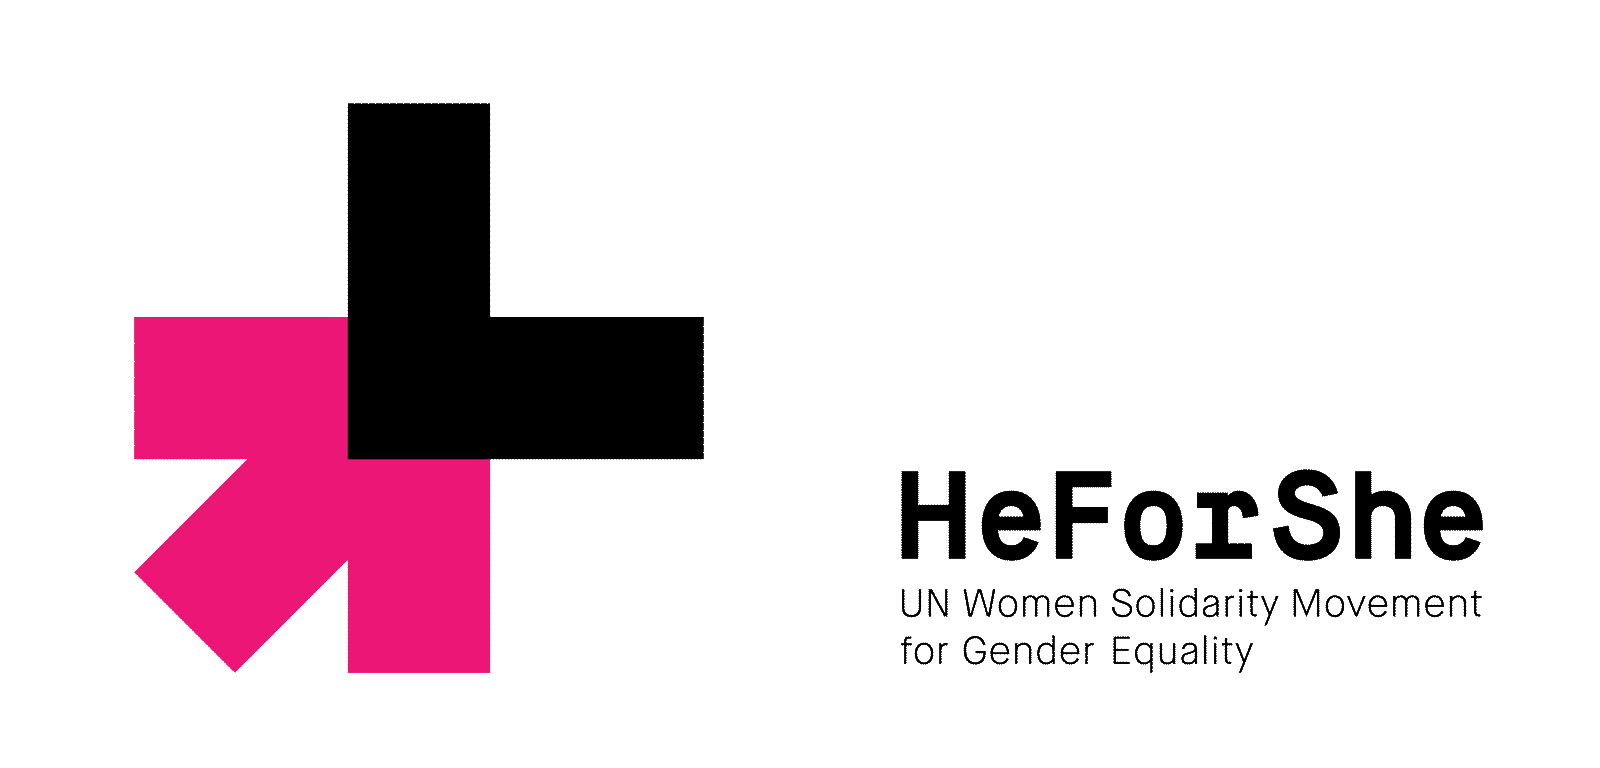 st jerome s heforshe gender equity essay contest st jerome s st jerome s heforshe gender equity essay contest